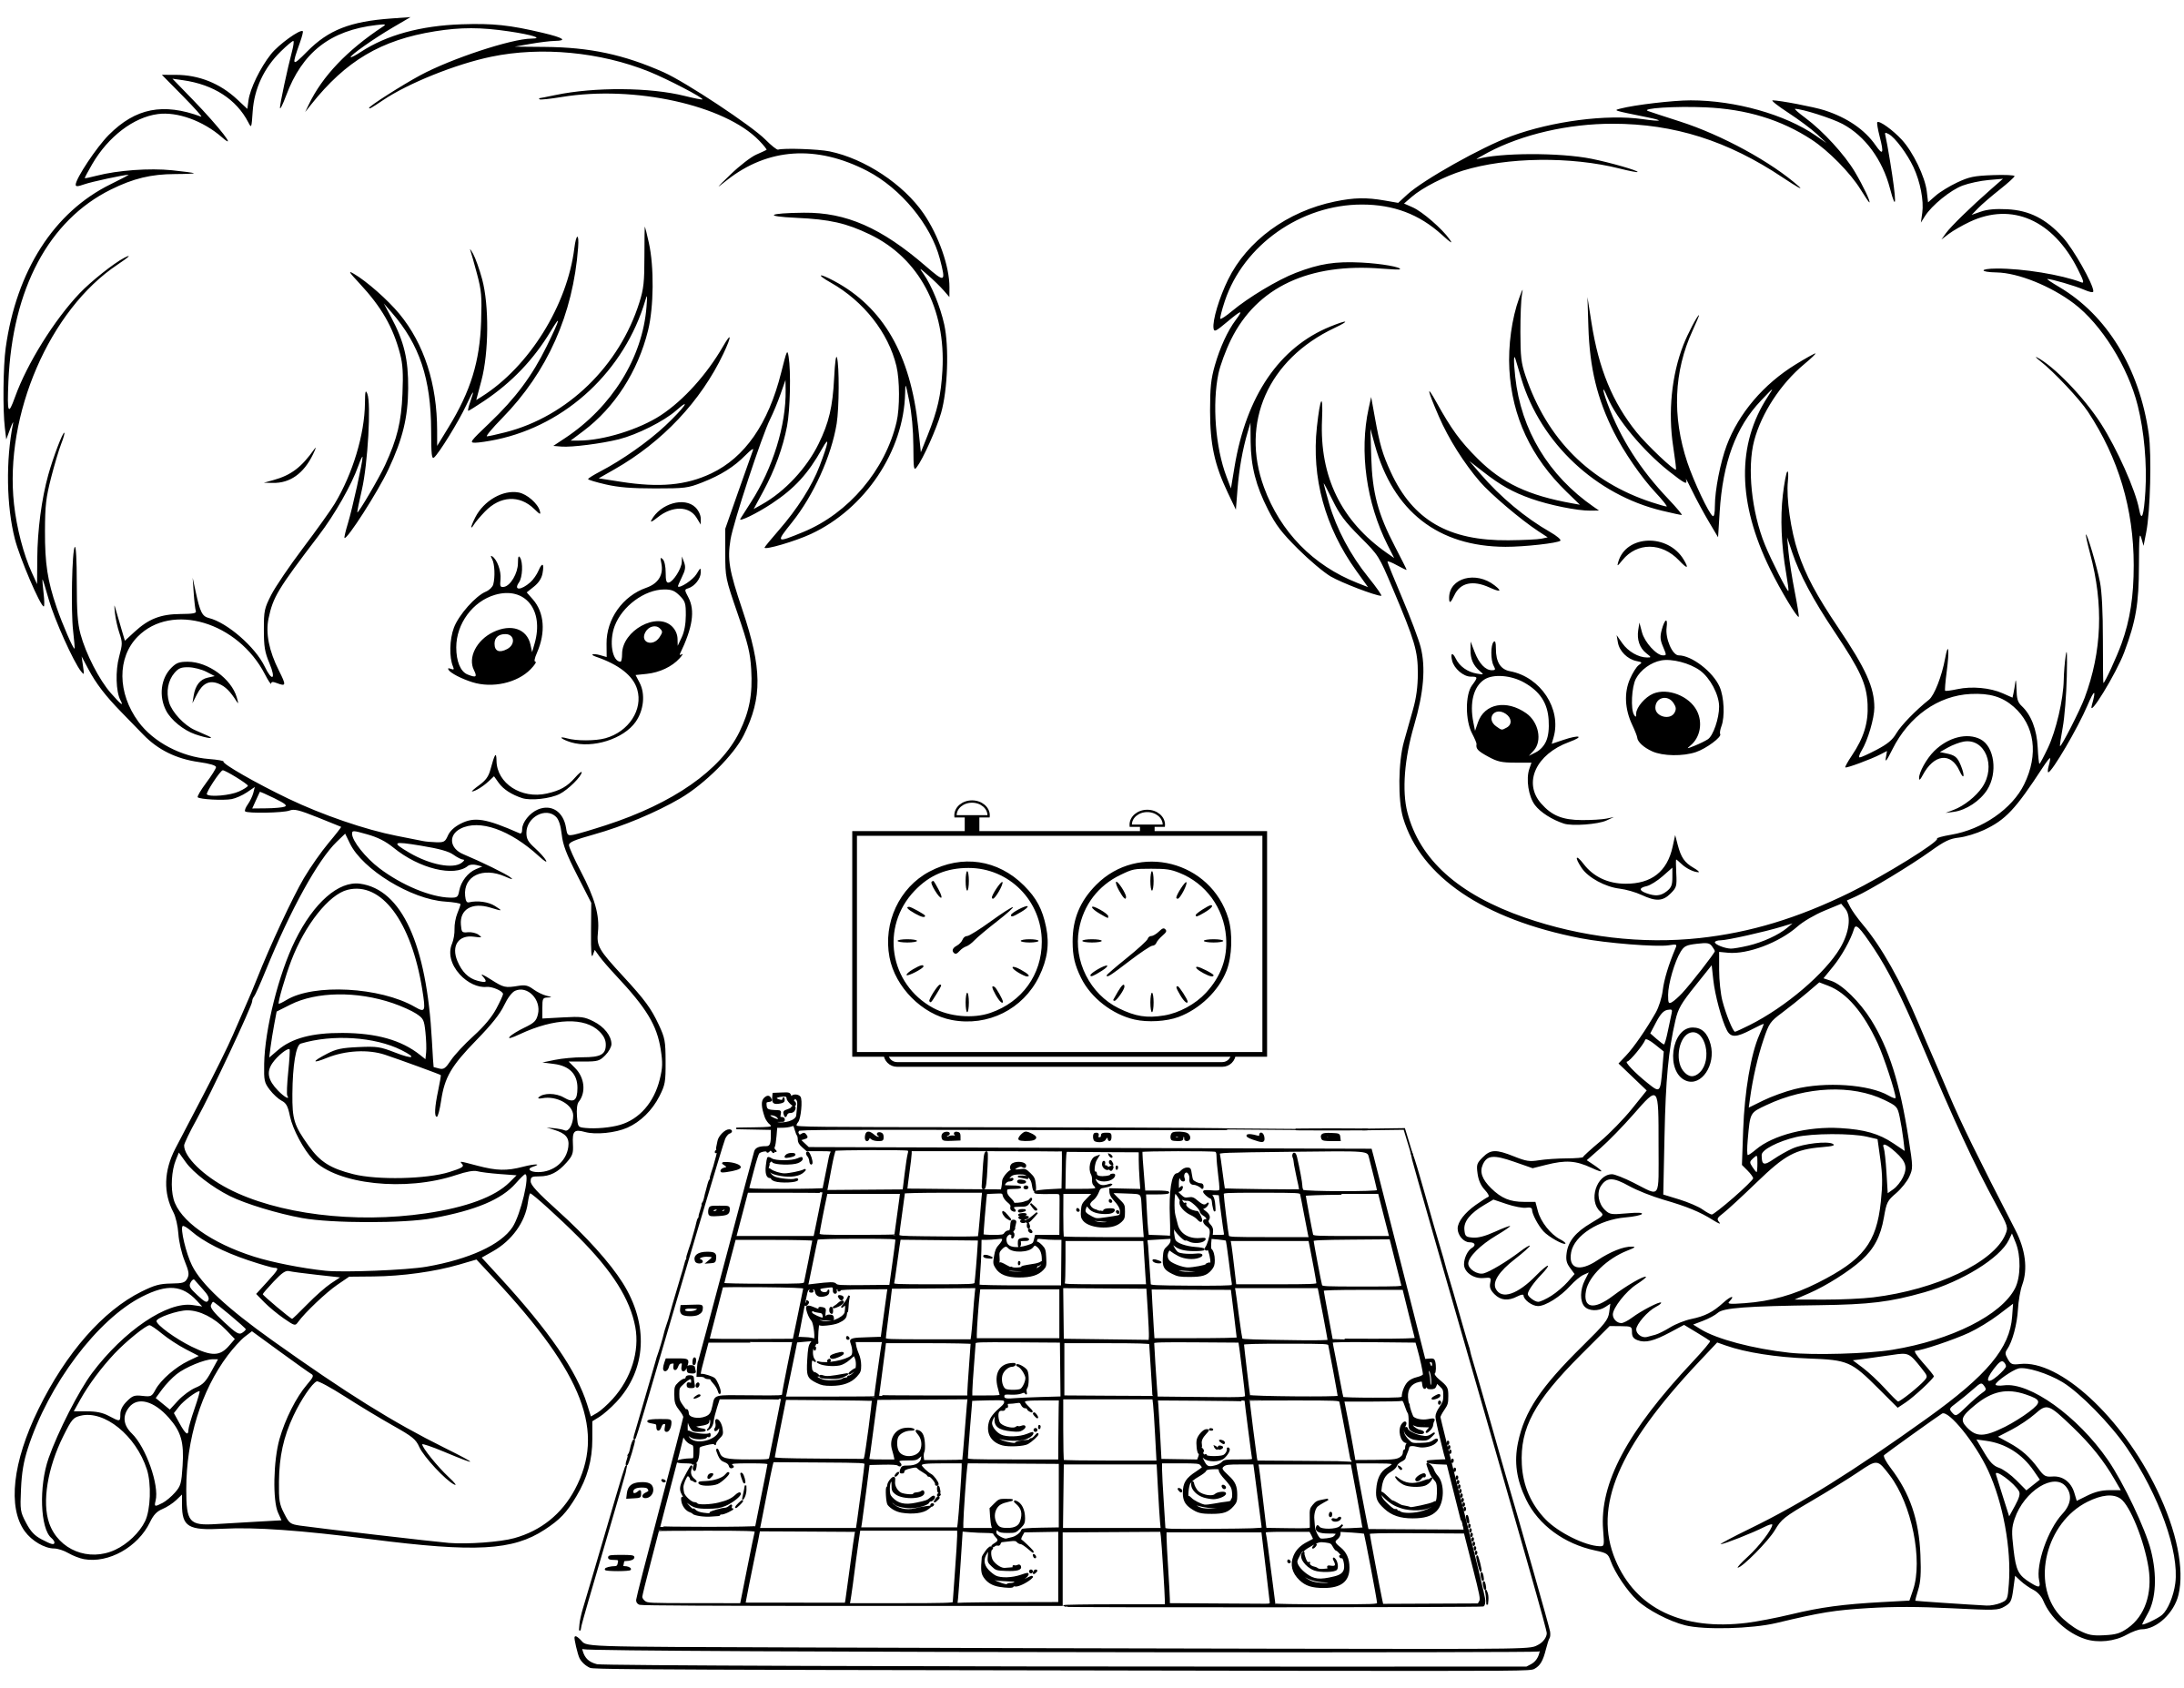 Chess coloring book  / Dibujo Ajedrez para colorear -18- by DG-RA